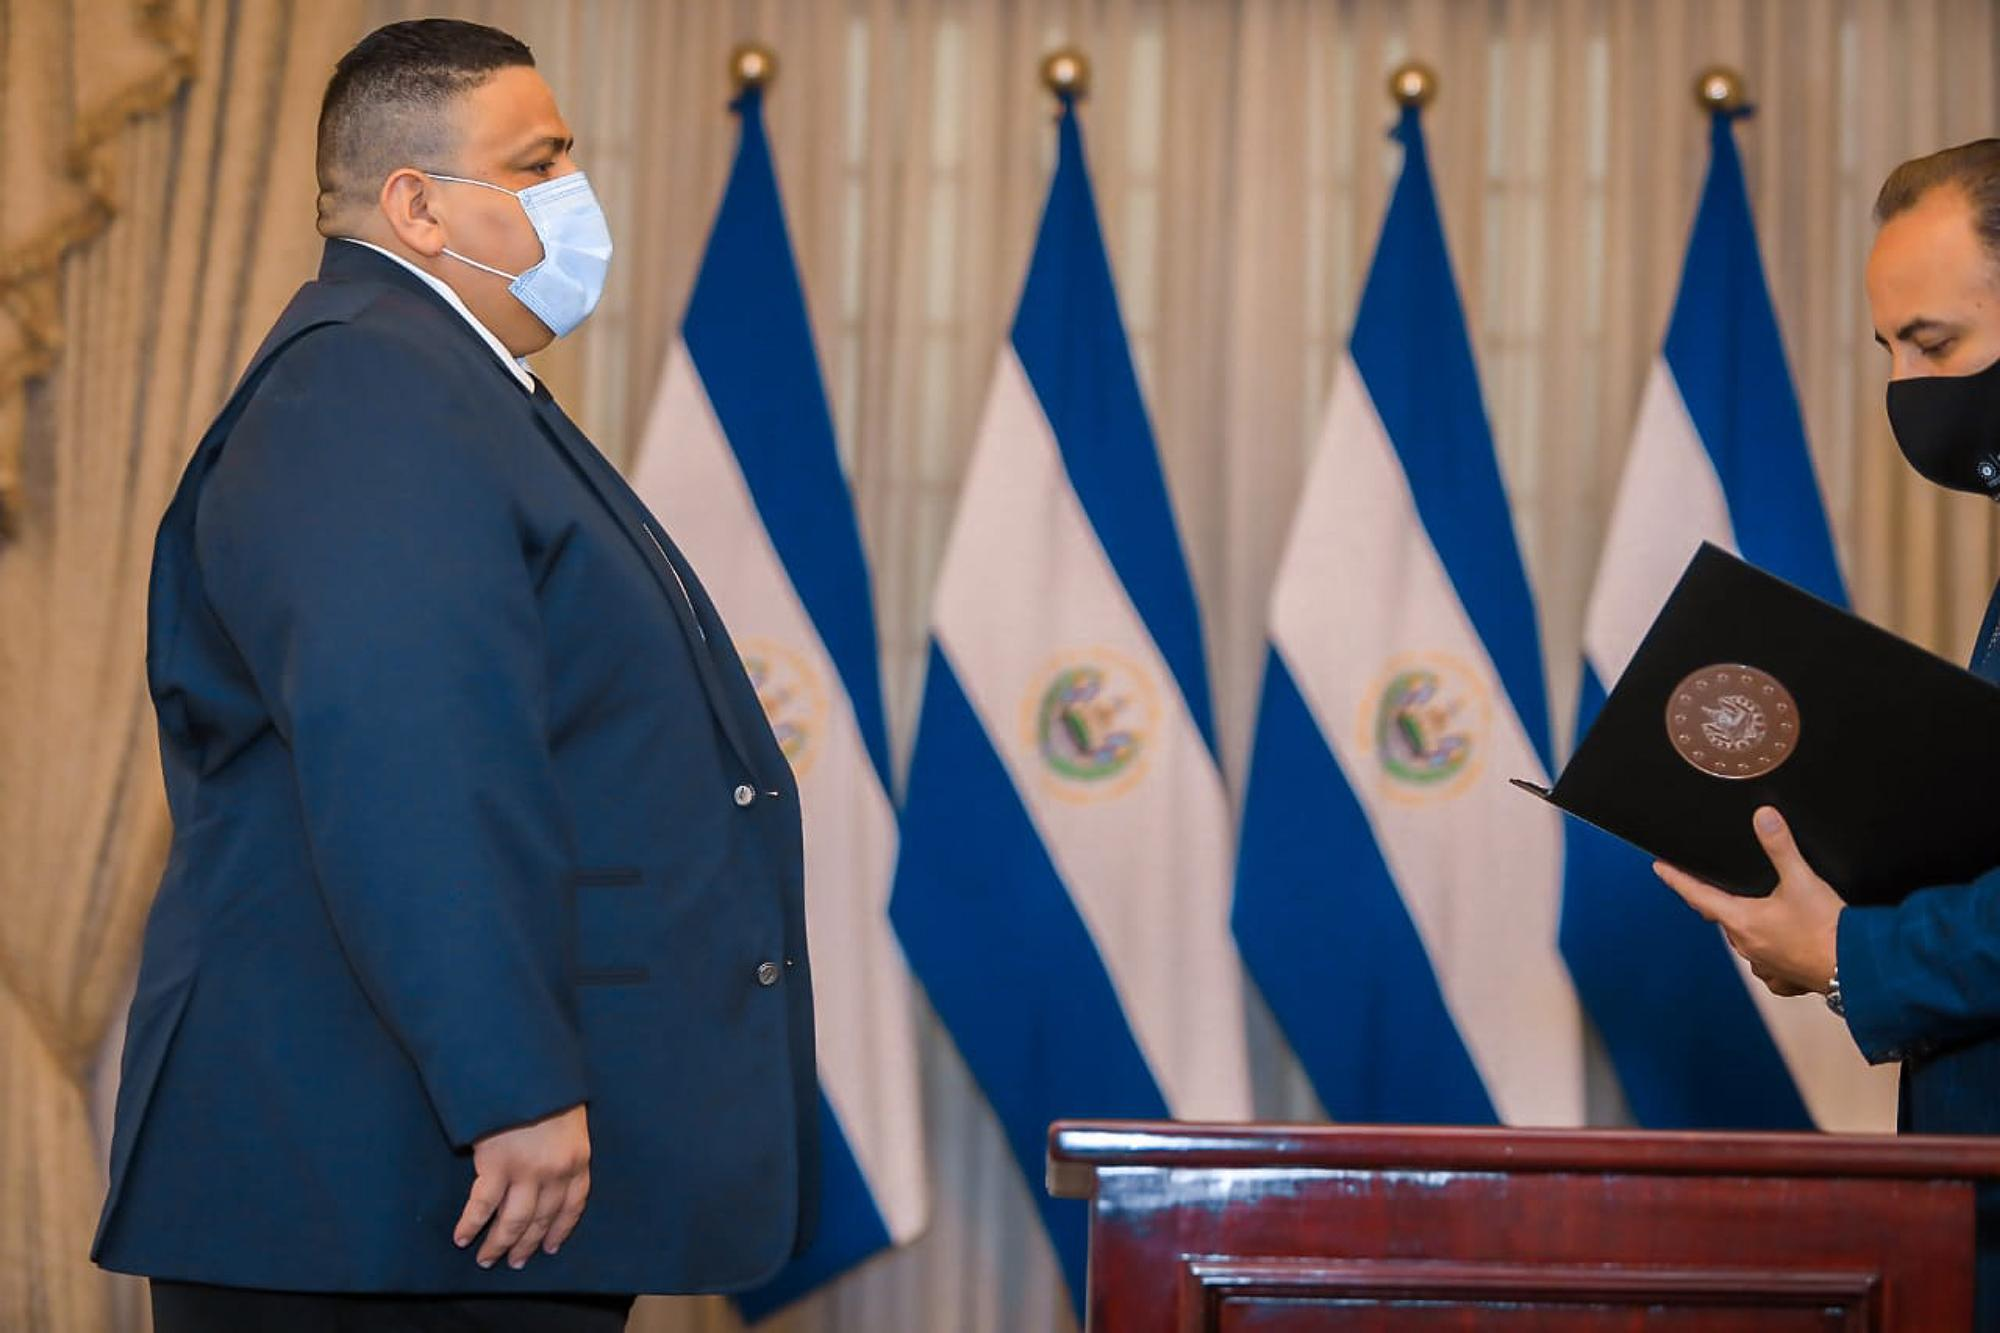 Carlos Aparicio during his swearing-in as deputy director general of prisons (Centros Penales). Photo: CAPRES